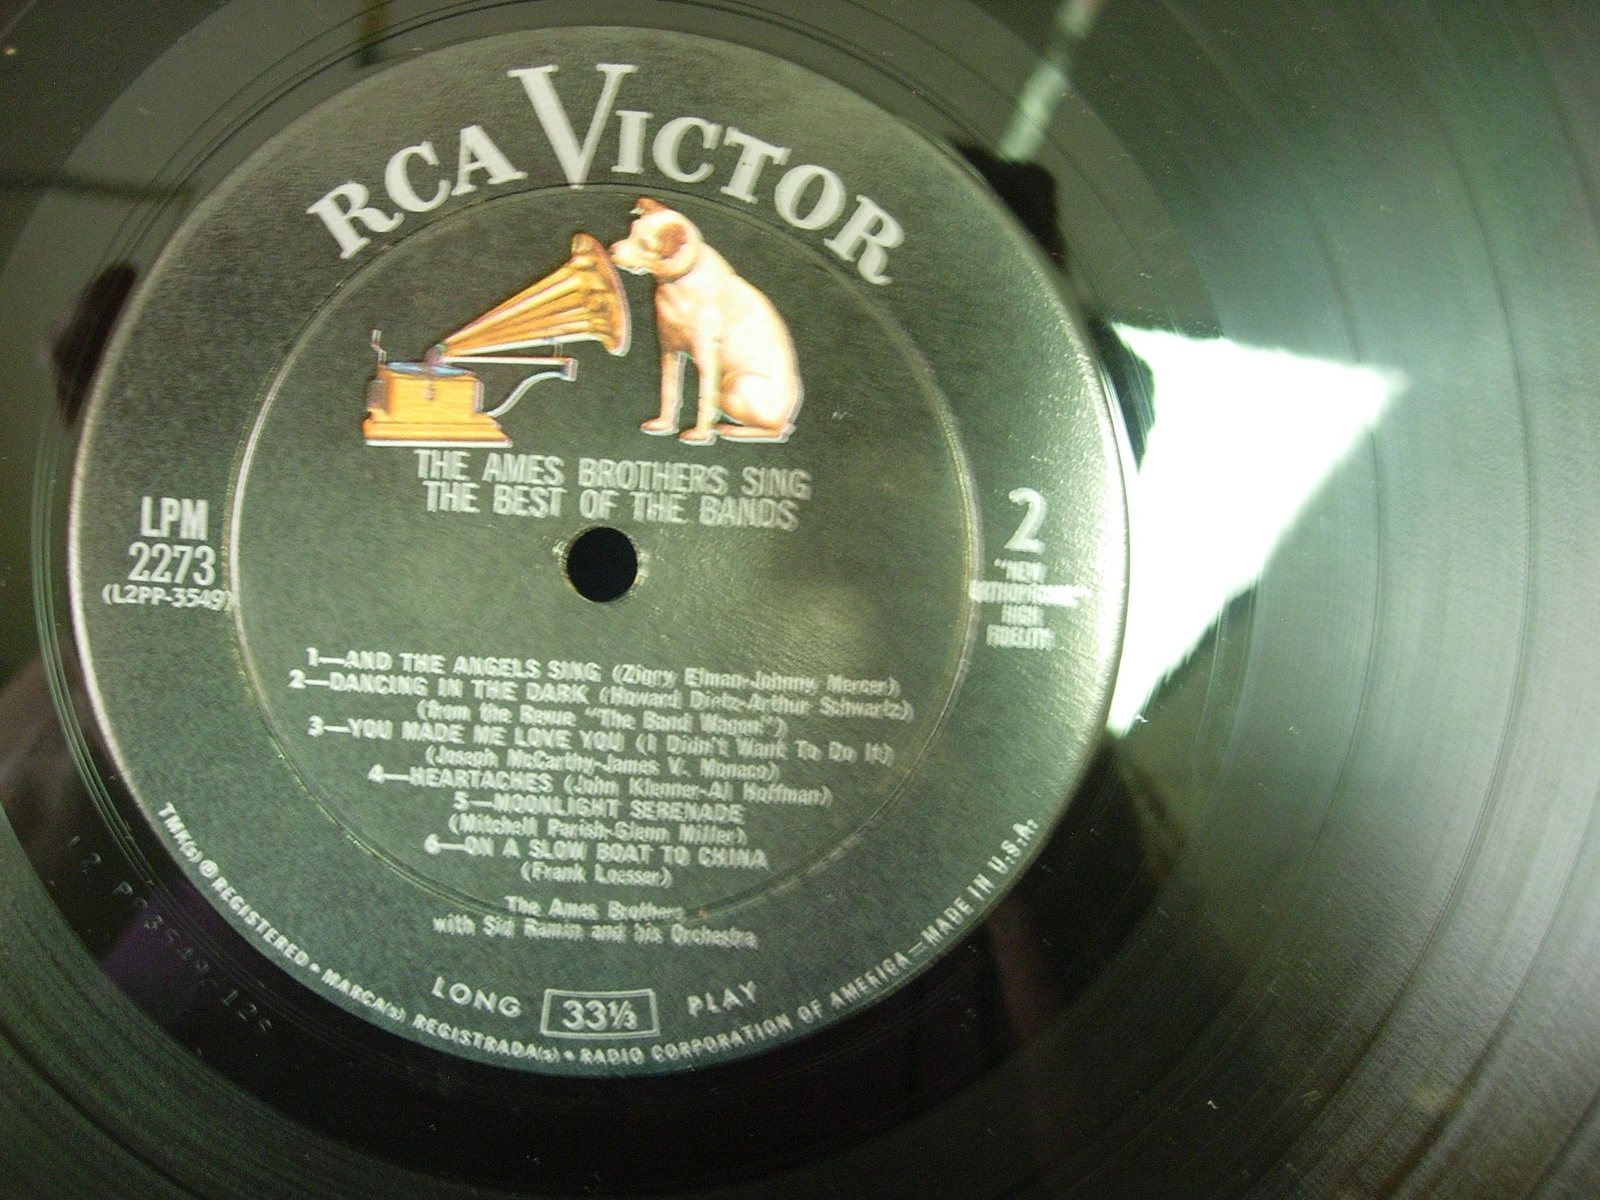 The Ames Brothers Sing the Best of the Bands - RCA Victor LPM-2273